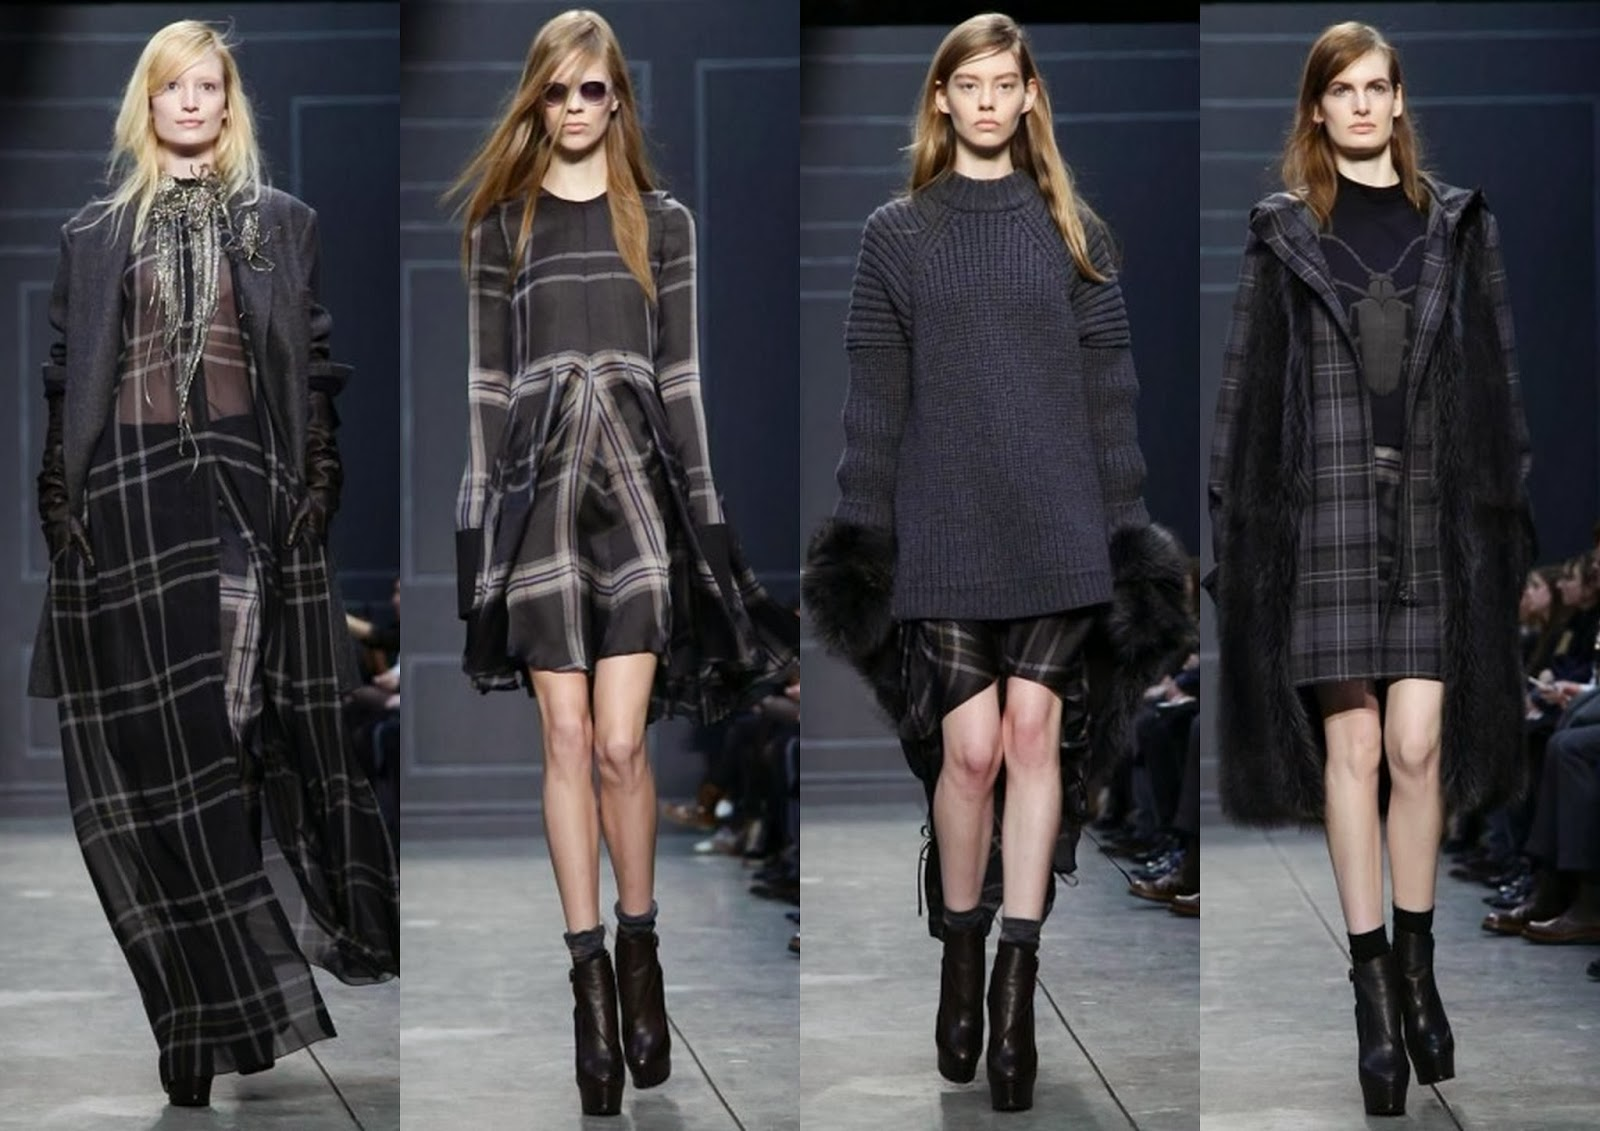 Vera Wang Fall/Winter 2014 (Picture via live-life-in-style.com